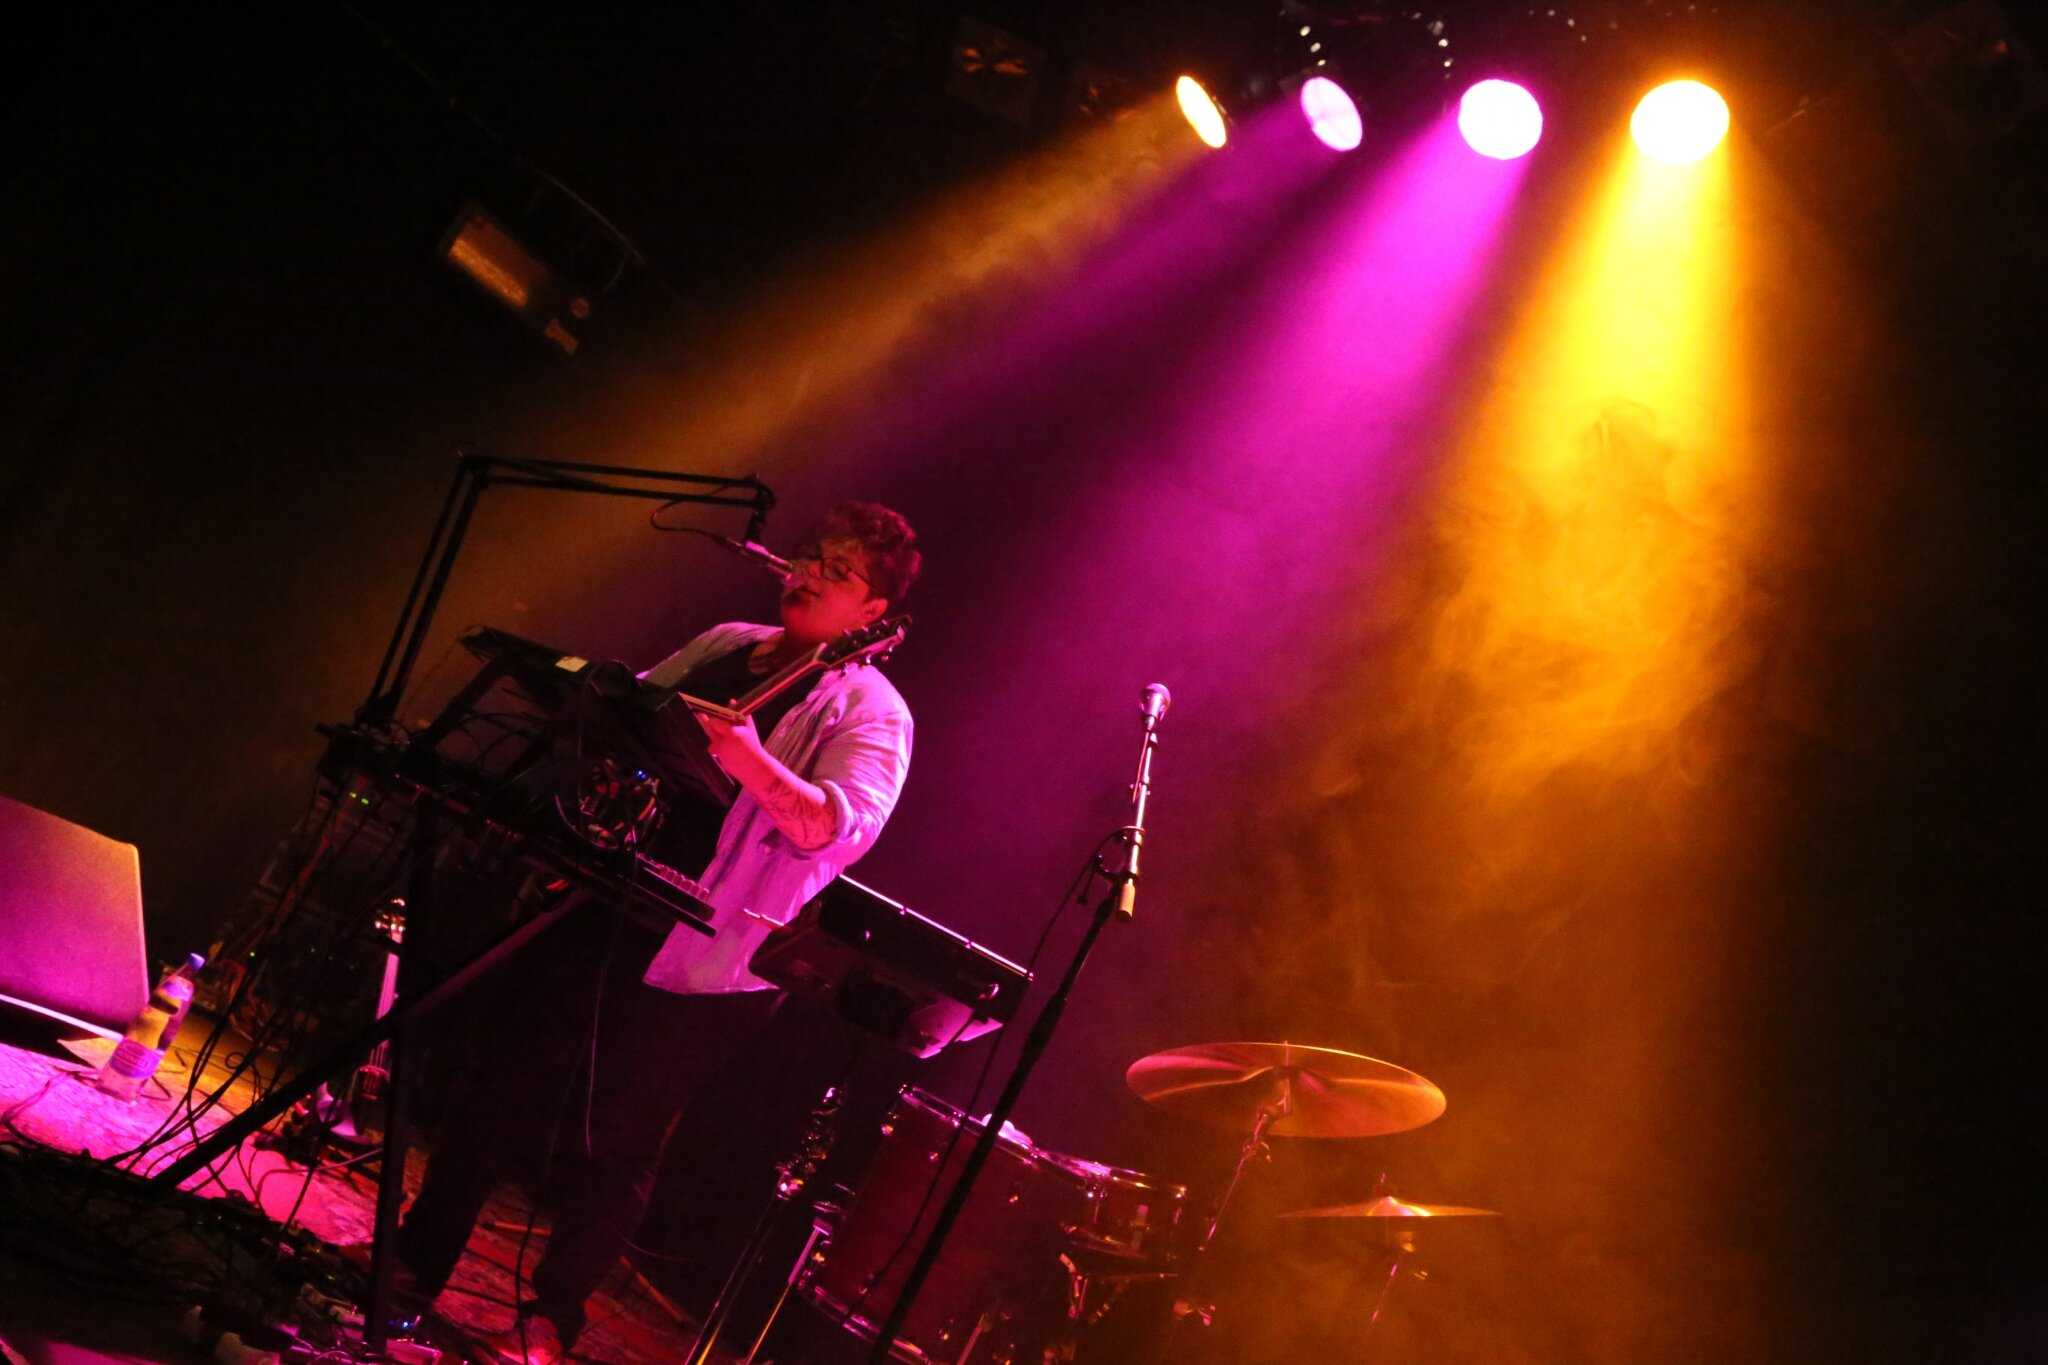 Live Aube L @ le Lux (Suisse) by Laurence Barriol